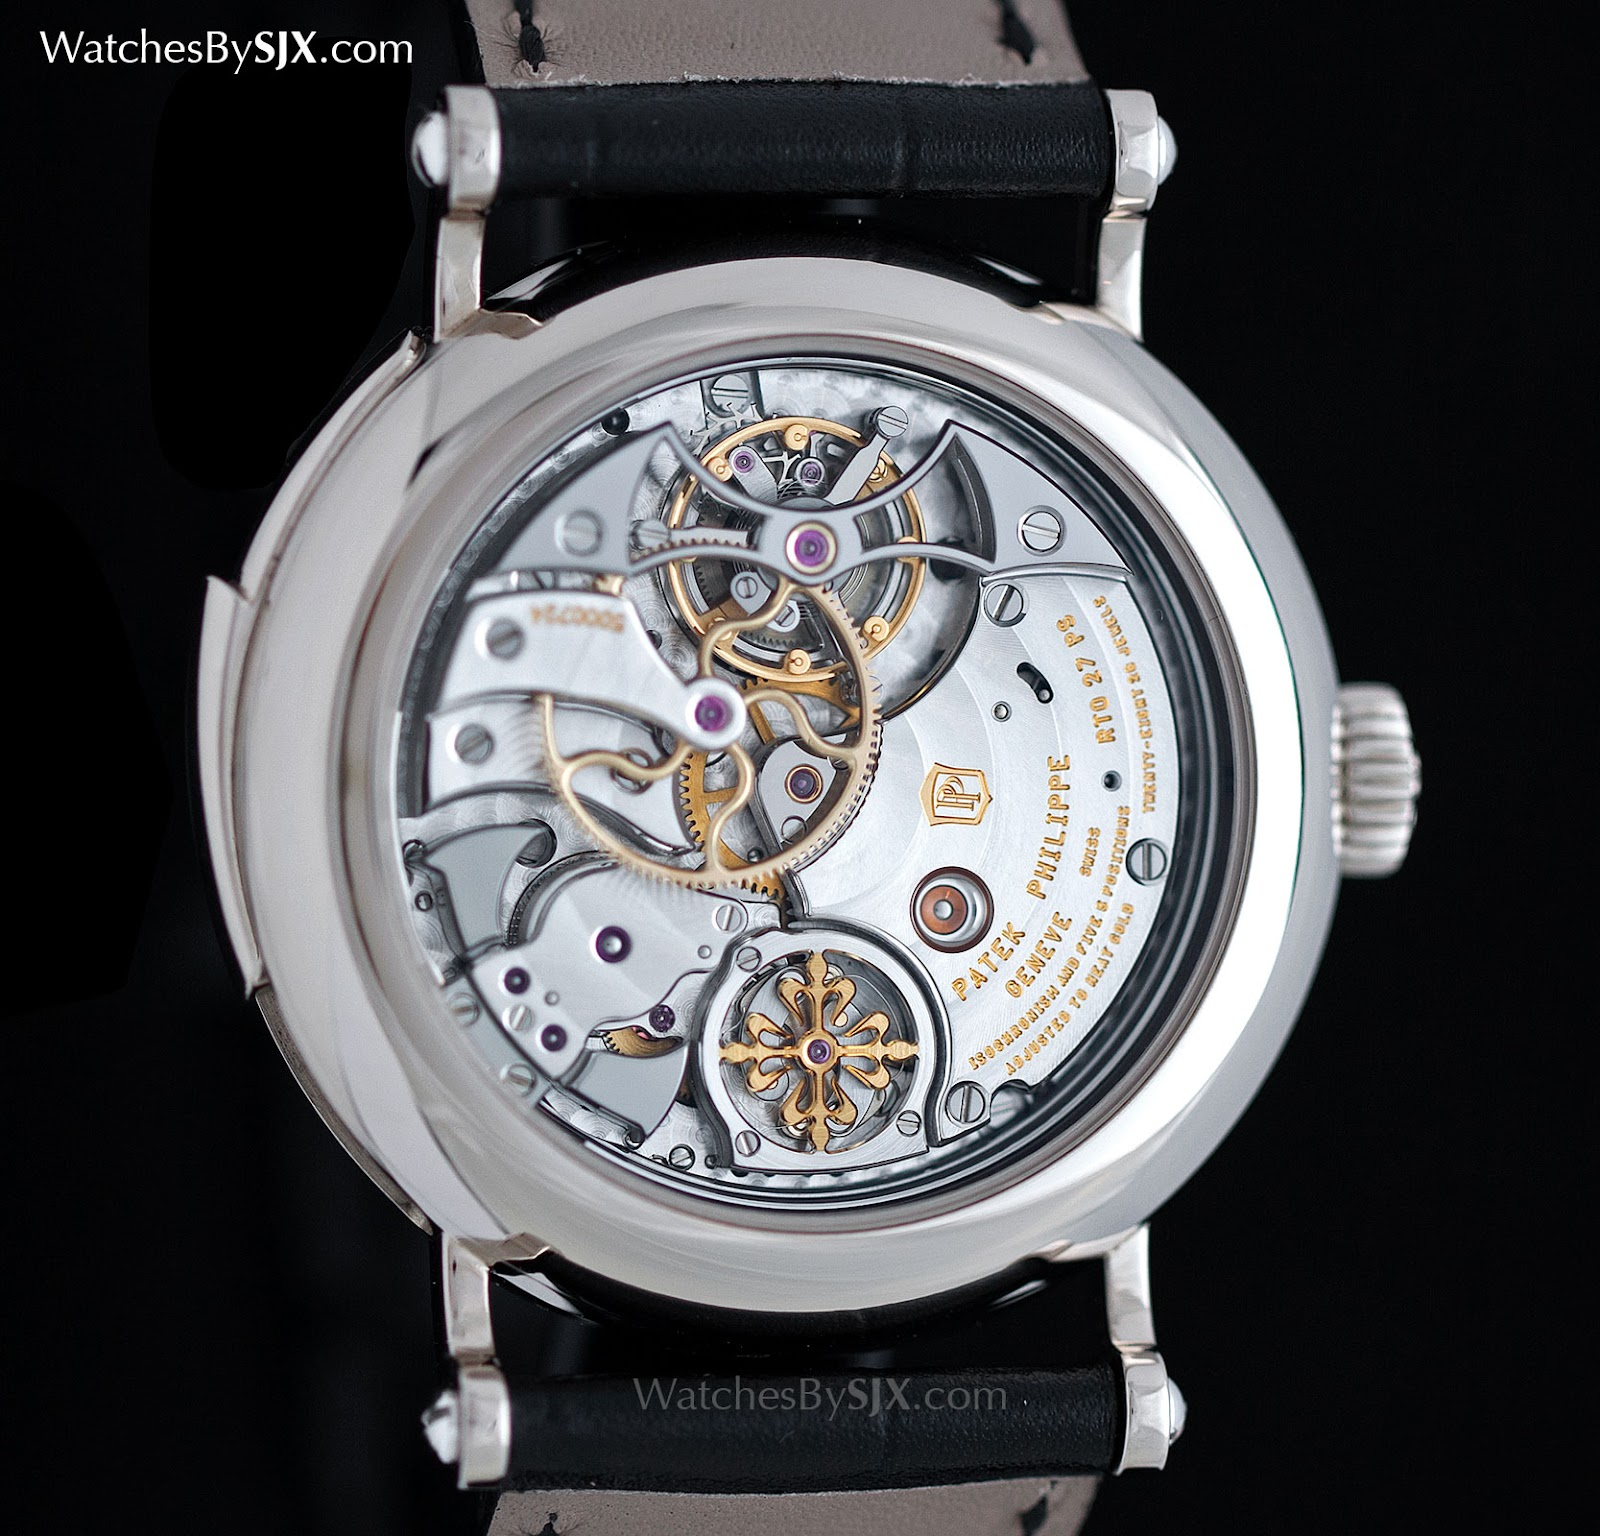 Watches by sjx up close with the patek philippe ref 5539g minute repeater tourbillon with for Patek philippe tourbillon